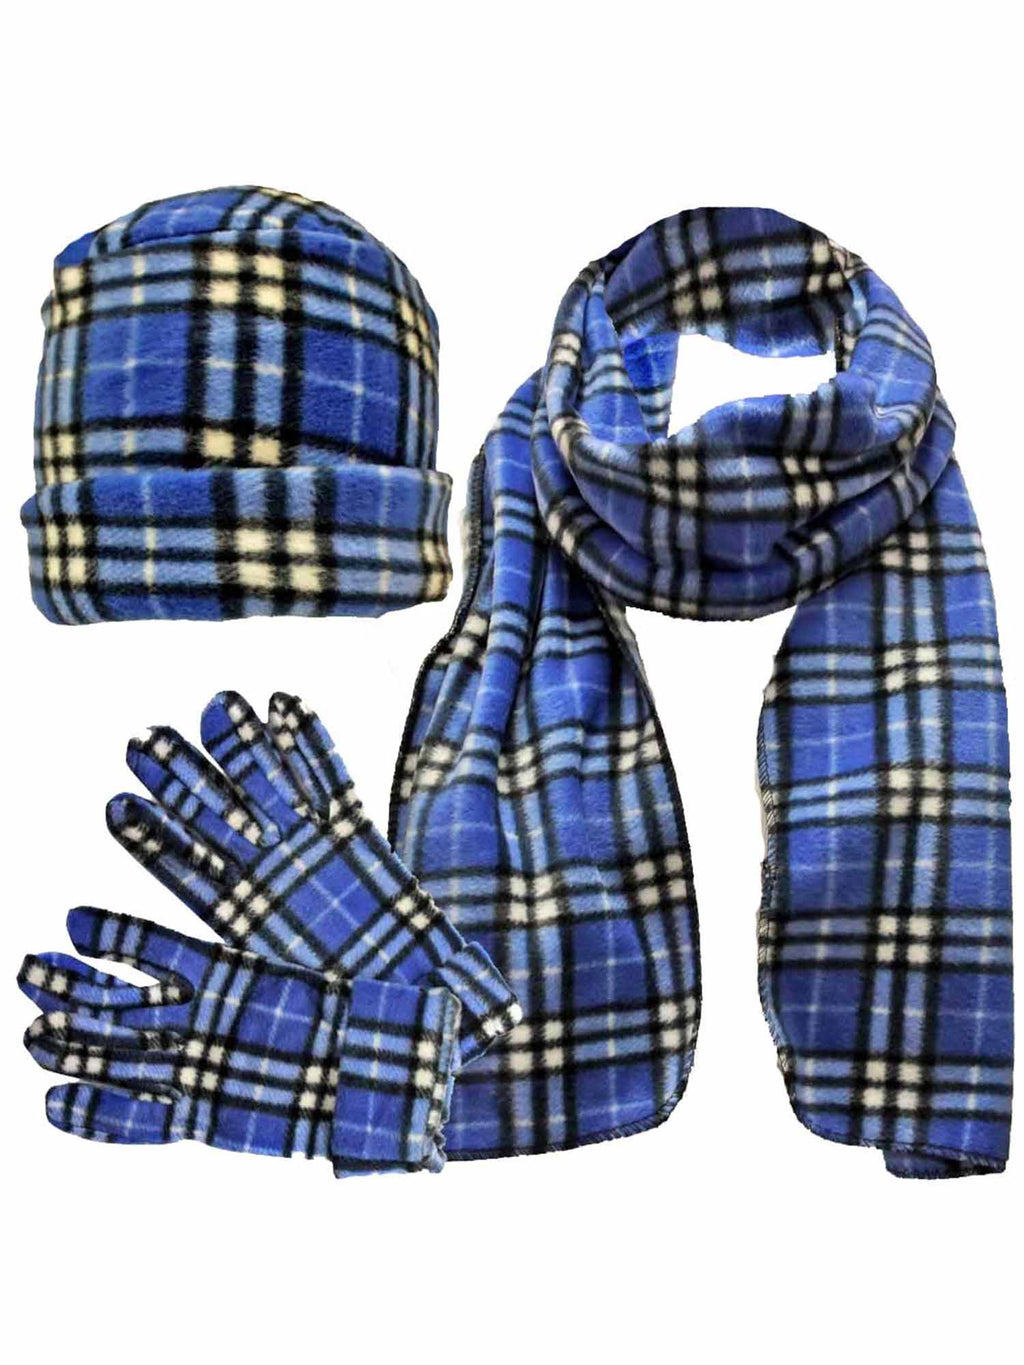 Blue & White Plaid Fleece 3 Piece Hat Scarf & Glove Set